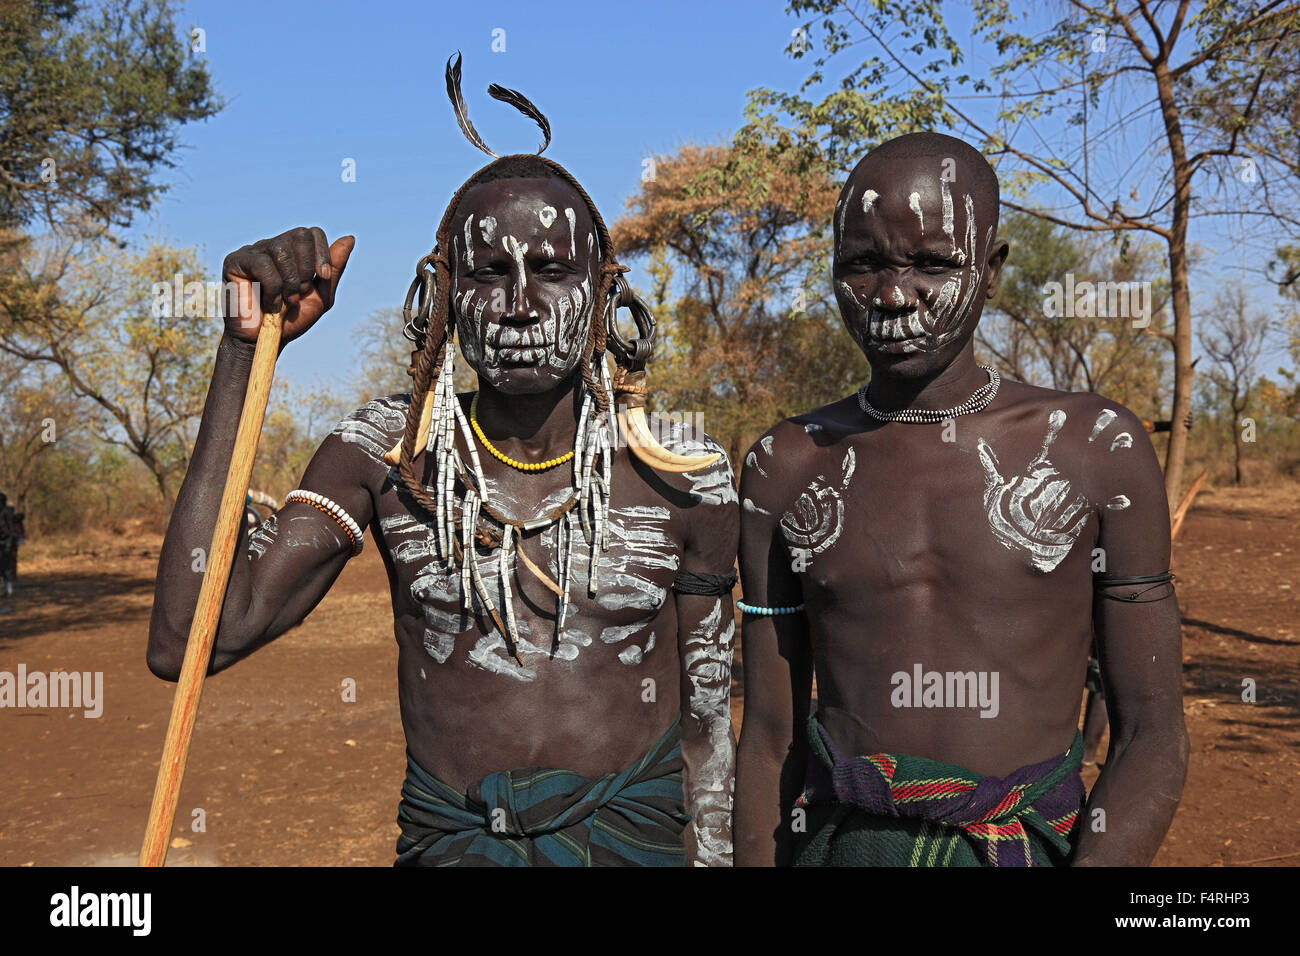 in Maco National Park, Mursi, two boys with painted faces Mursi - Stock Image